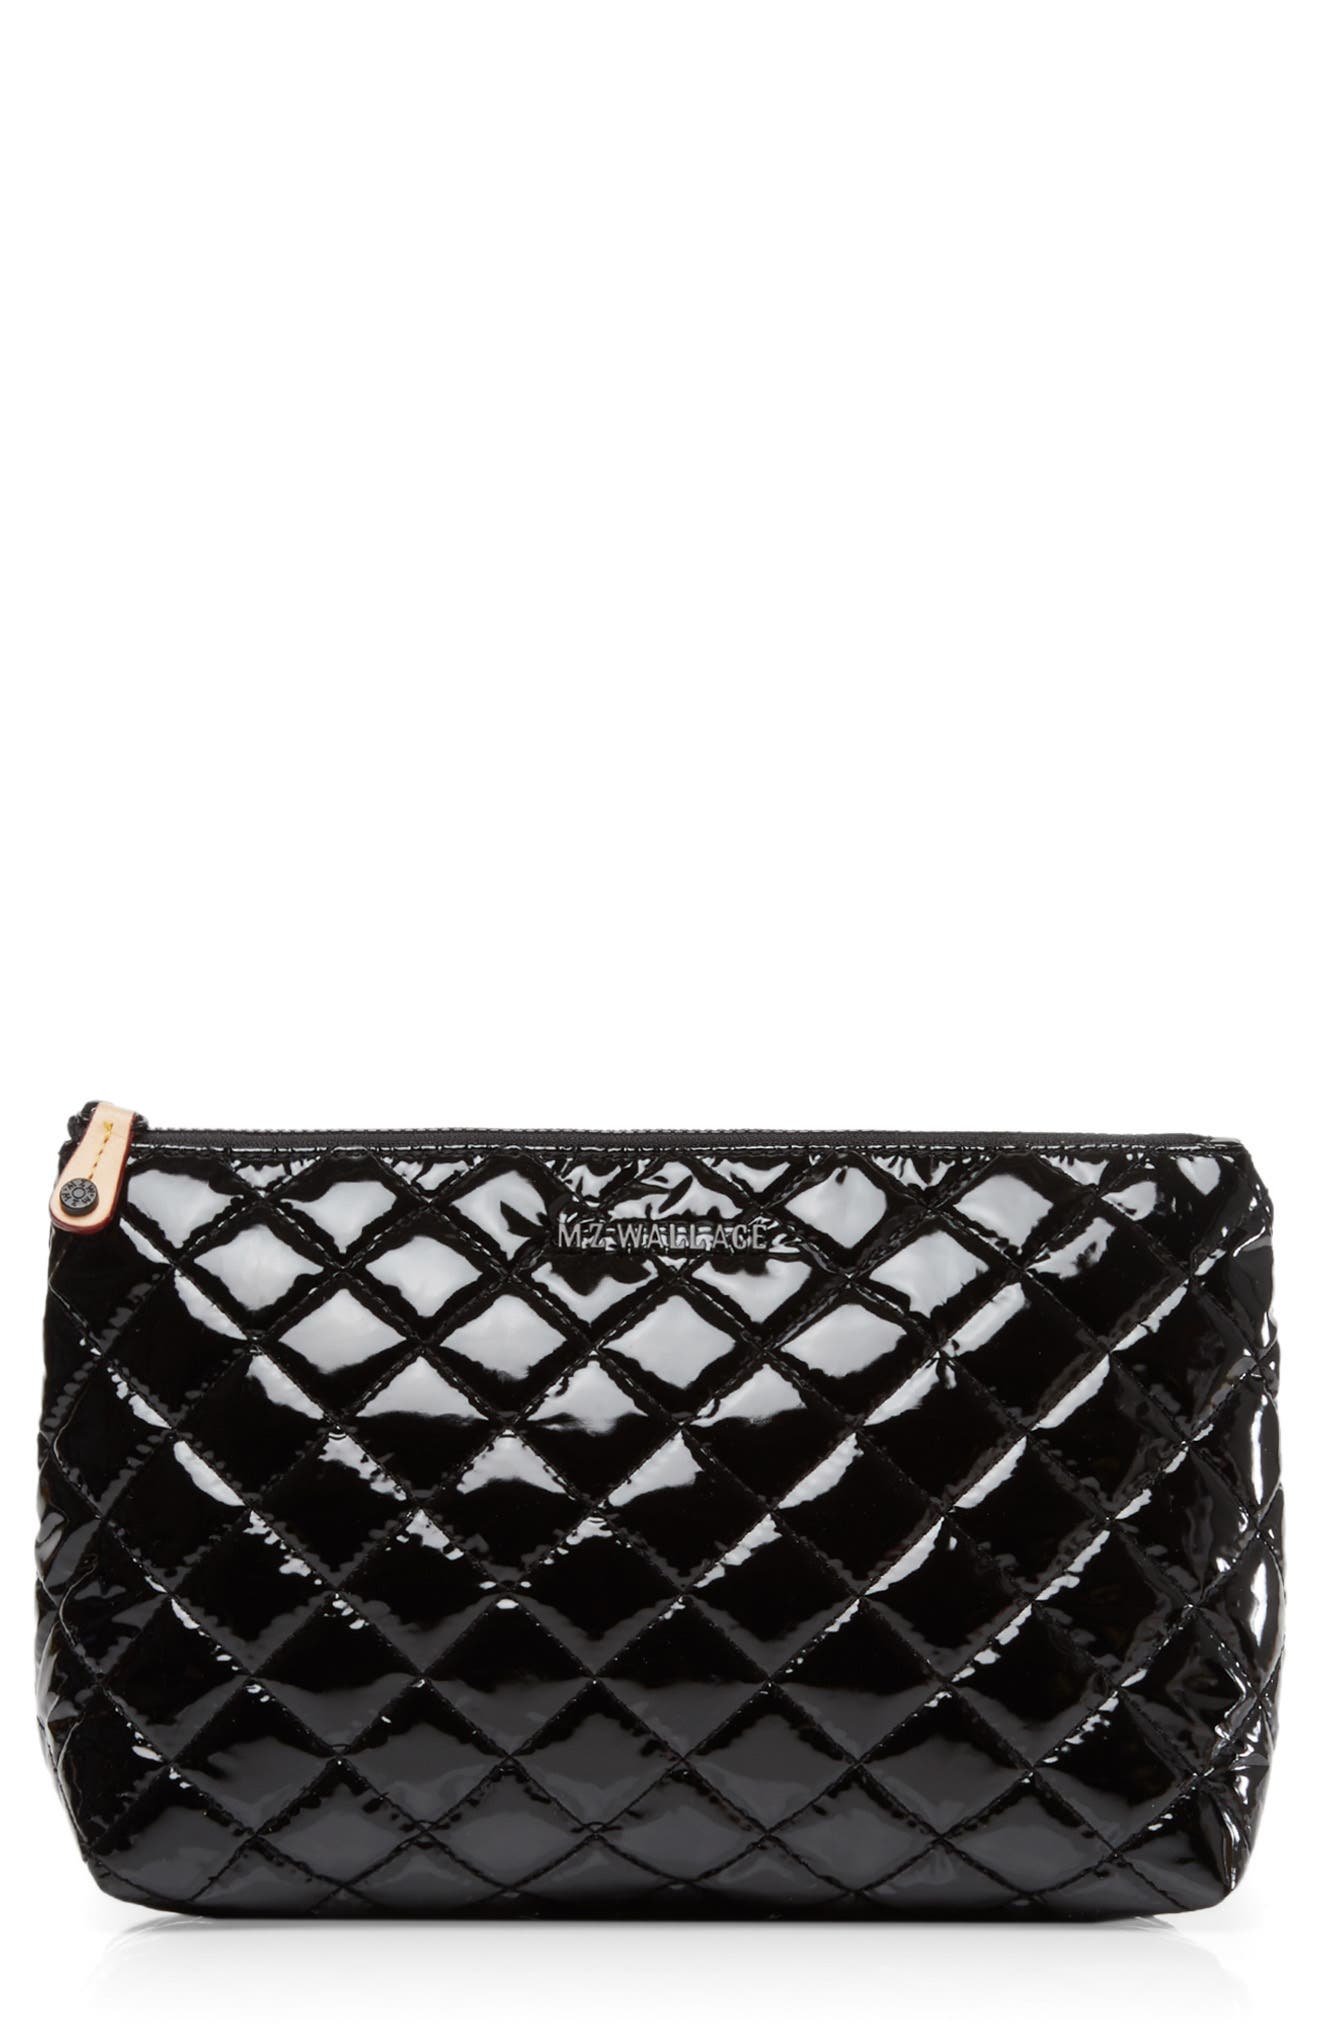 Zoey Quilted Nylon Cosmetics Case in Black Lacquer